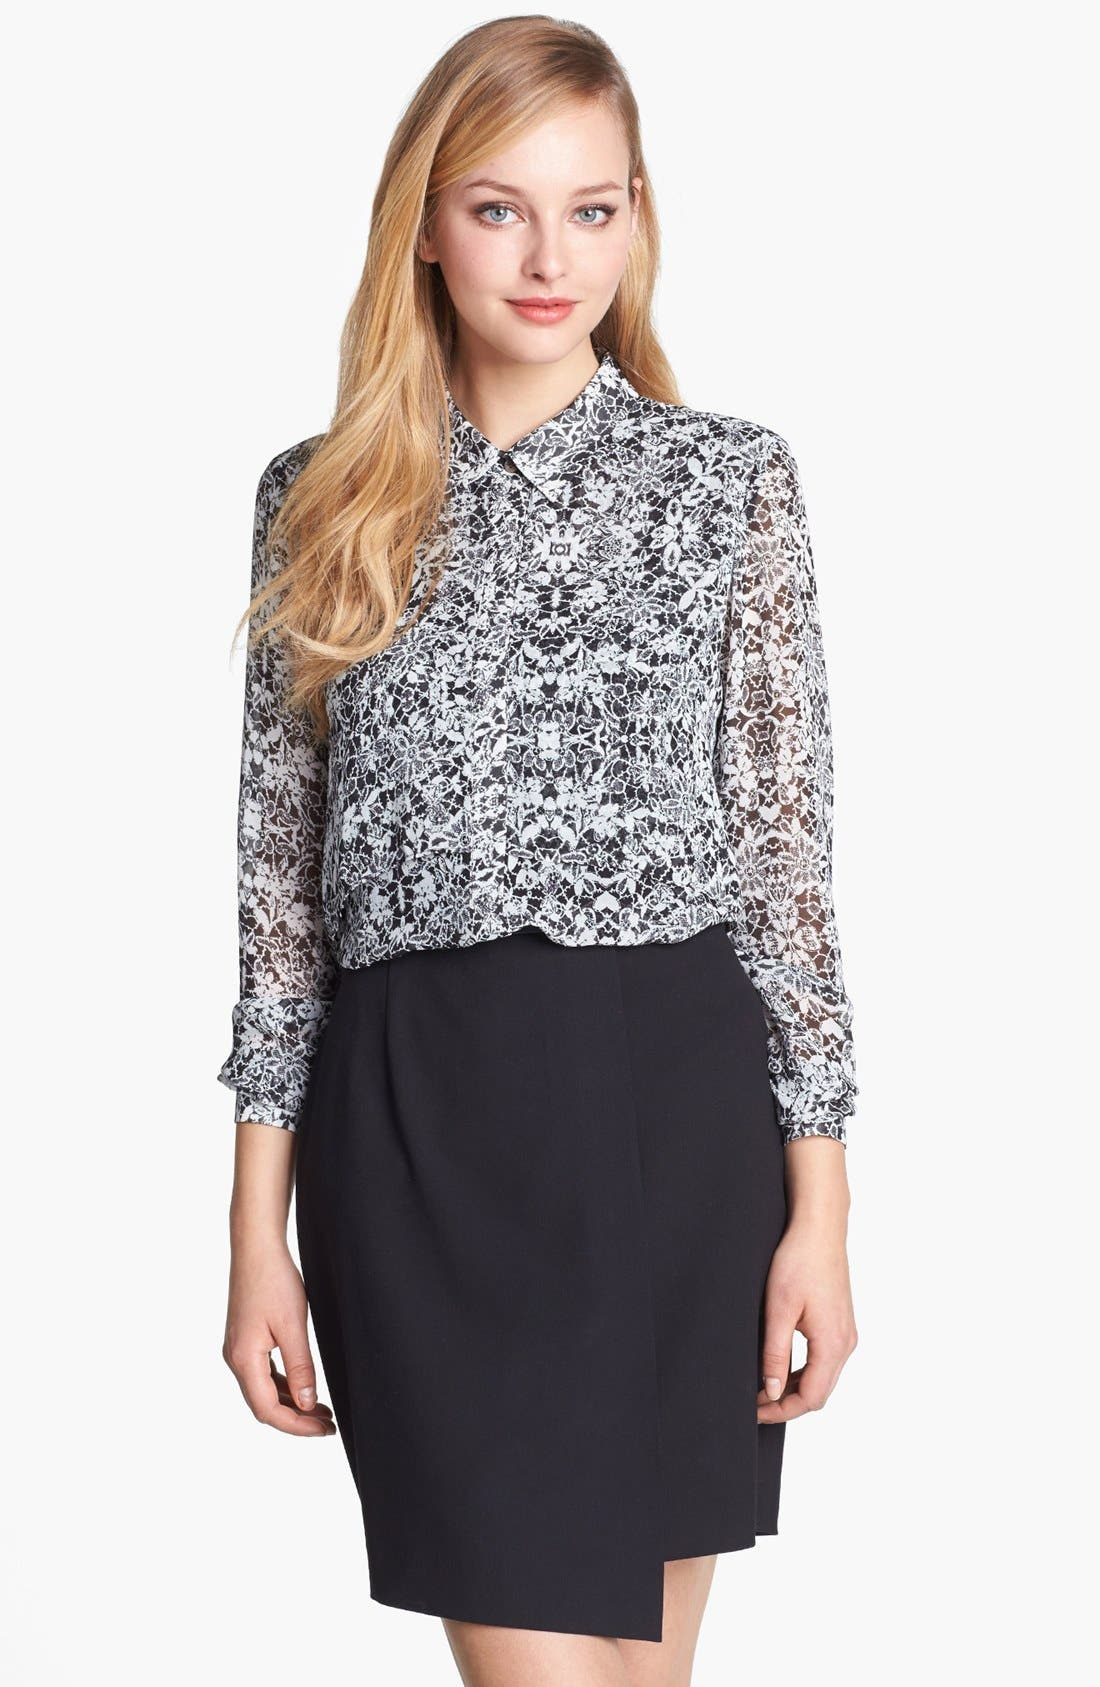 Alternate Image 1 Selected - Vince Camuto Lace Print Blouse